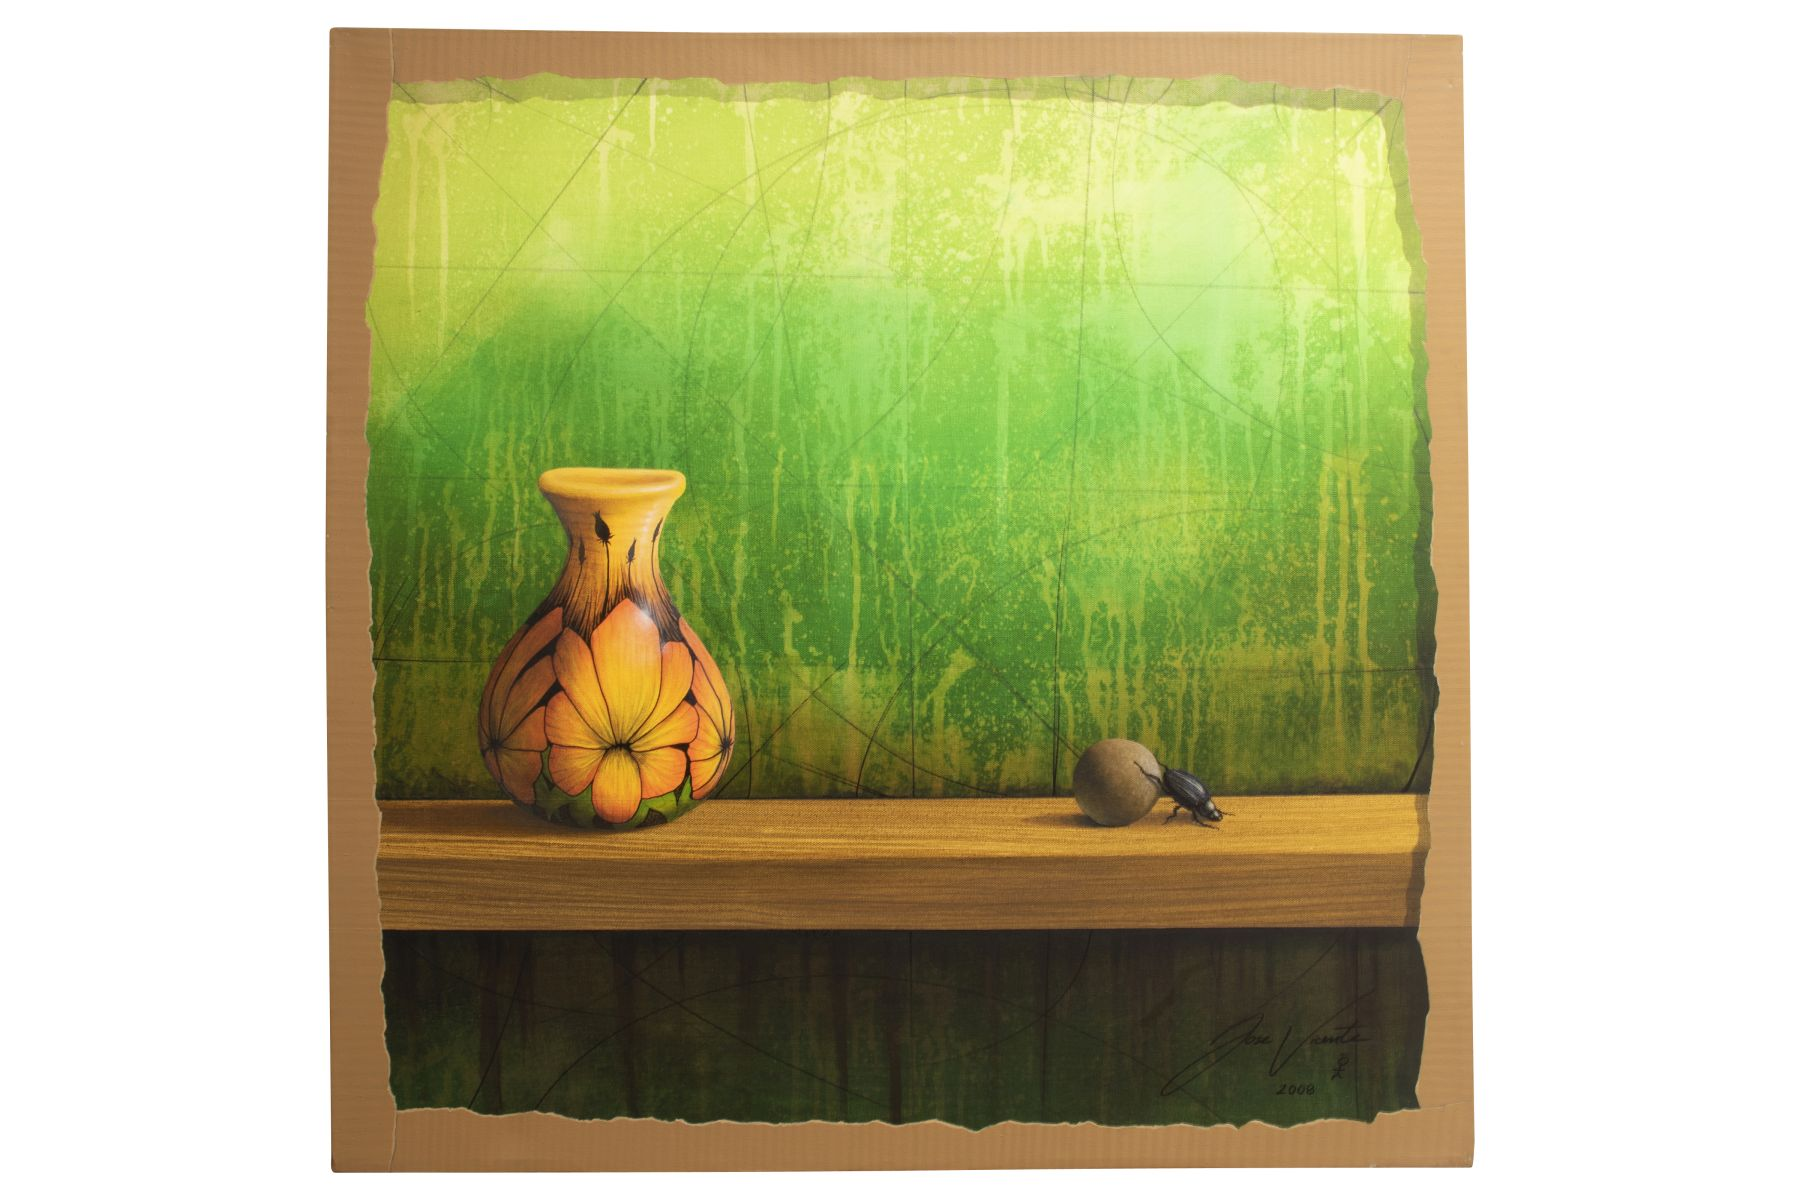 "#32 Jose Vicente (1977) "" Vase against green background 